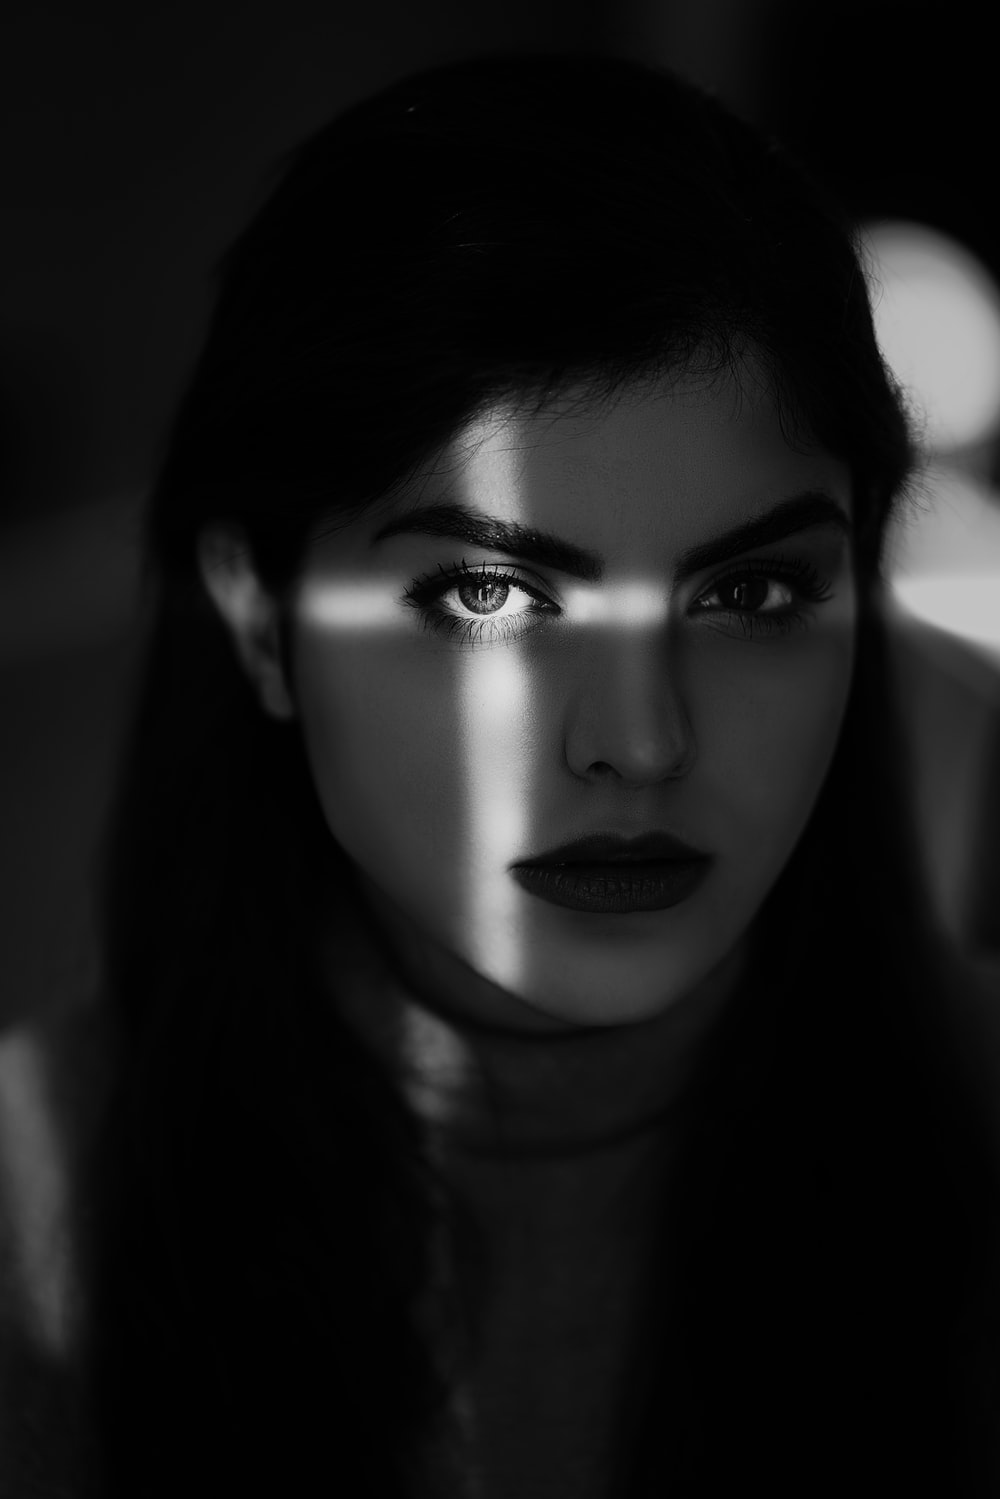 womans face in grayscale